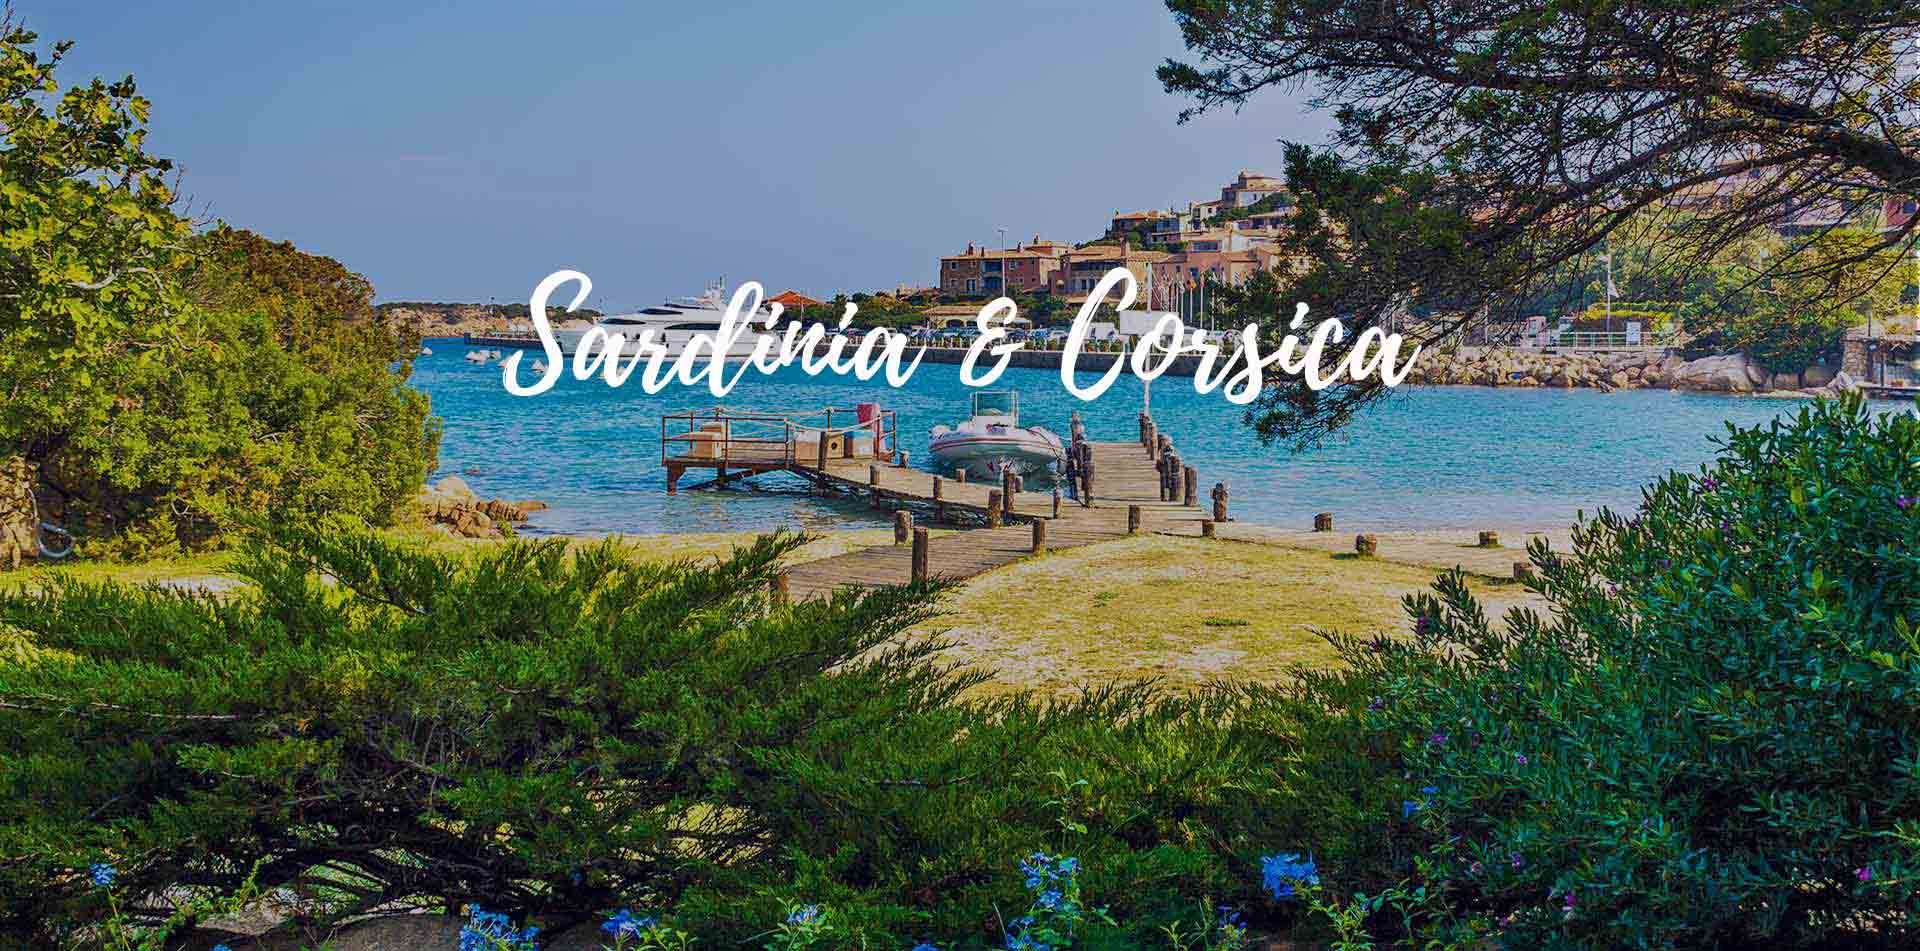 Europe Italy Sardinia and Corsica Porto Cervo scenic beach old town lush landscape wood dock - luxury vacation destinations